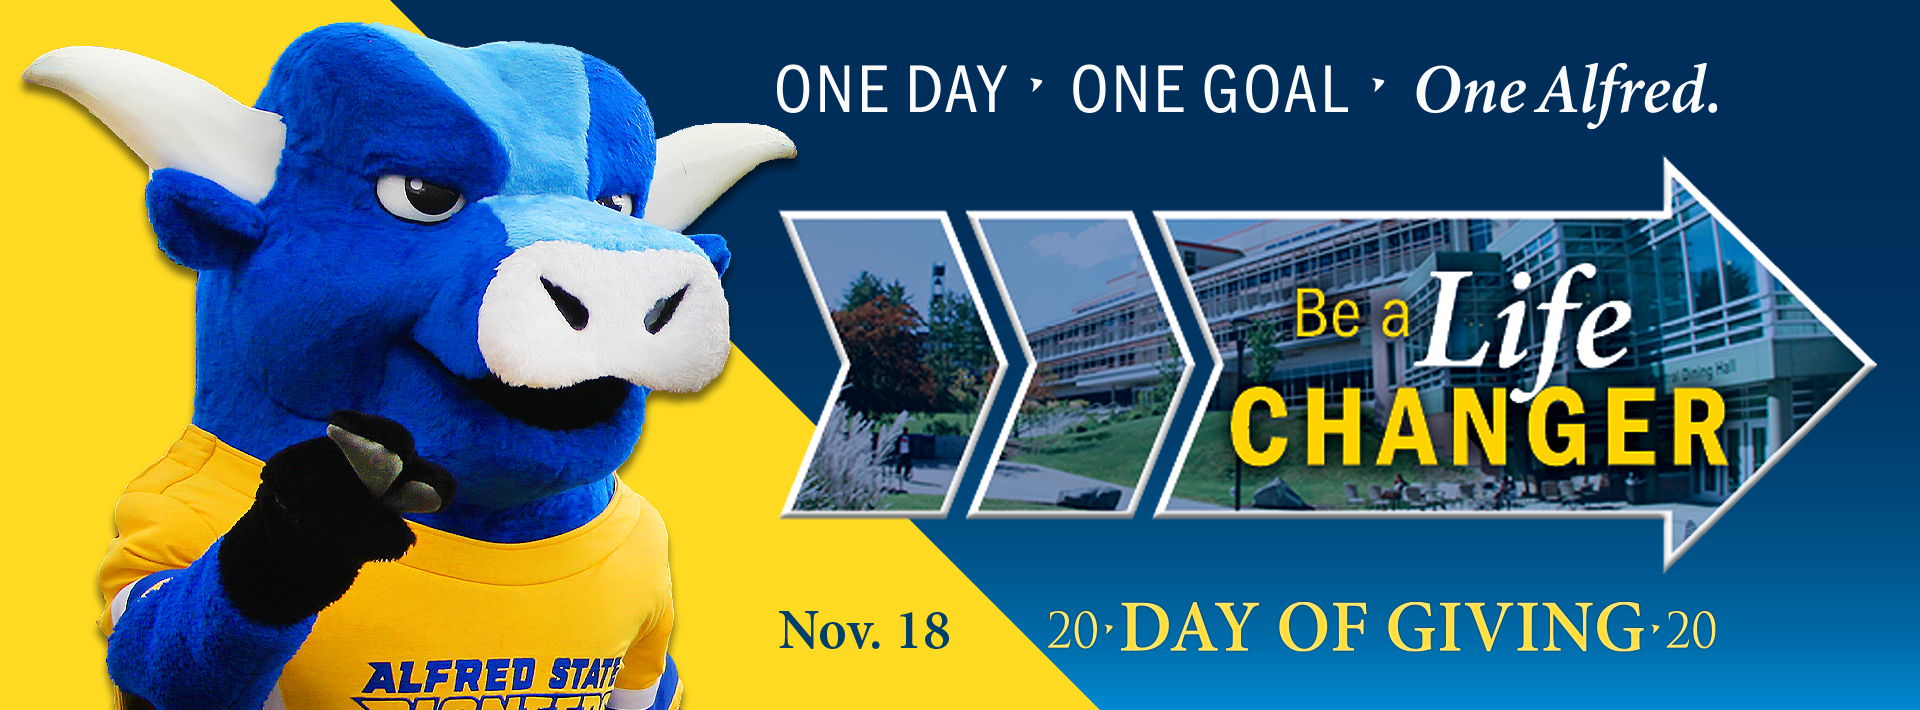 One day. One goal. One Alfred. Day of Giving. Blue ox holding arm up. Be a life changer. Nov. 18